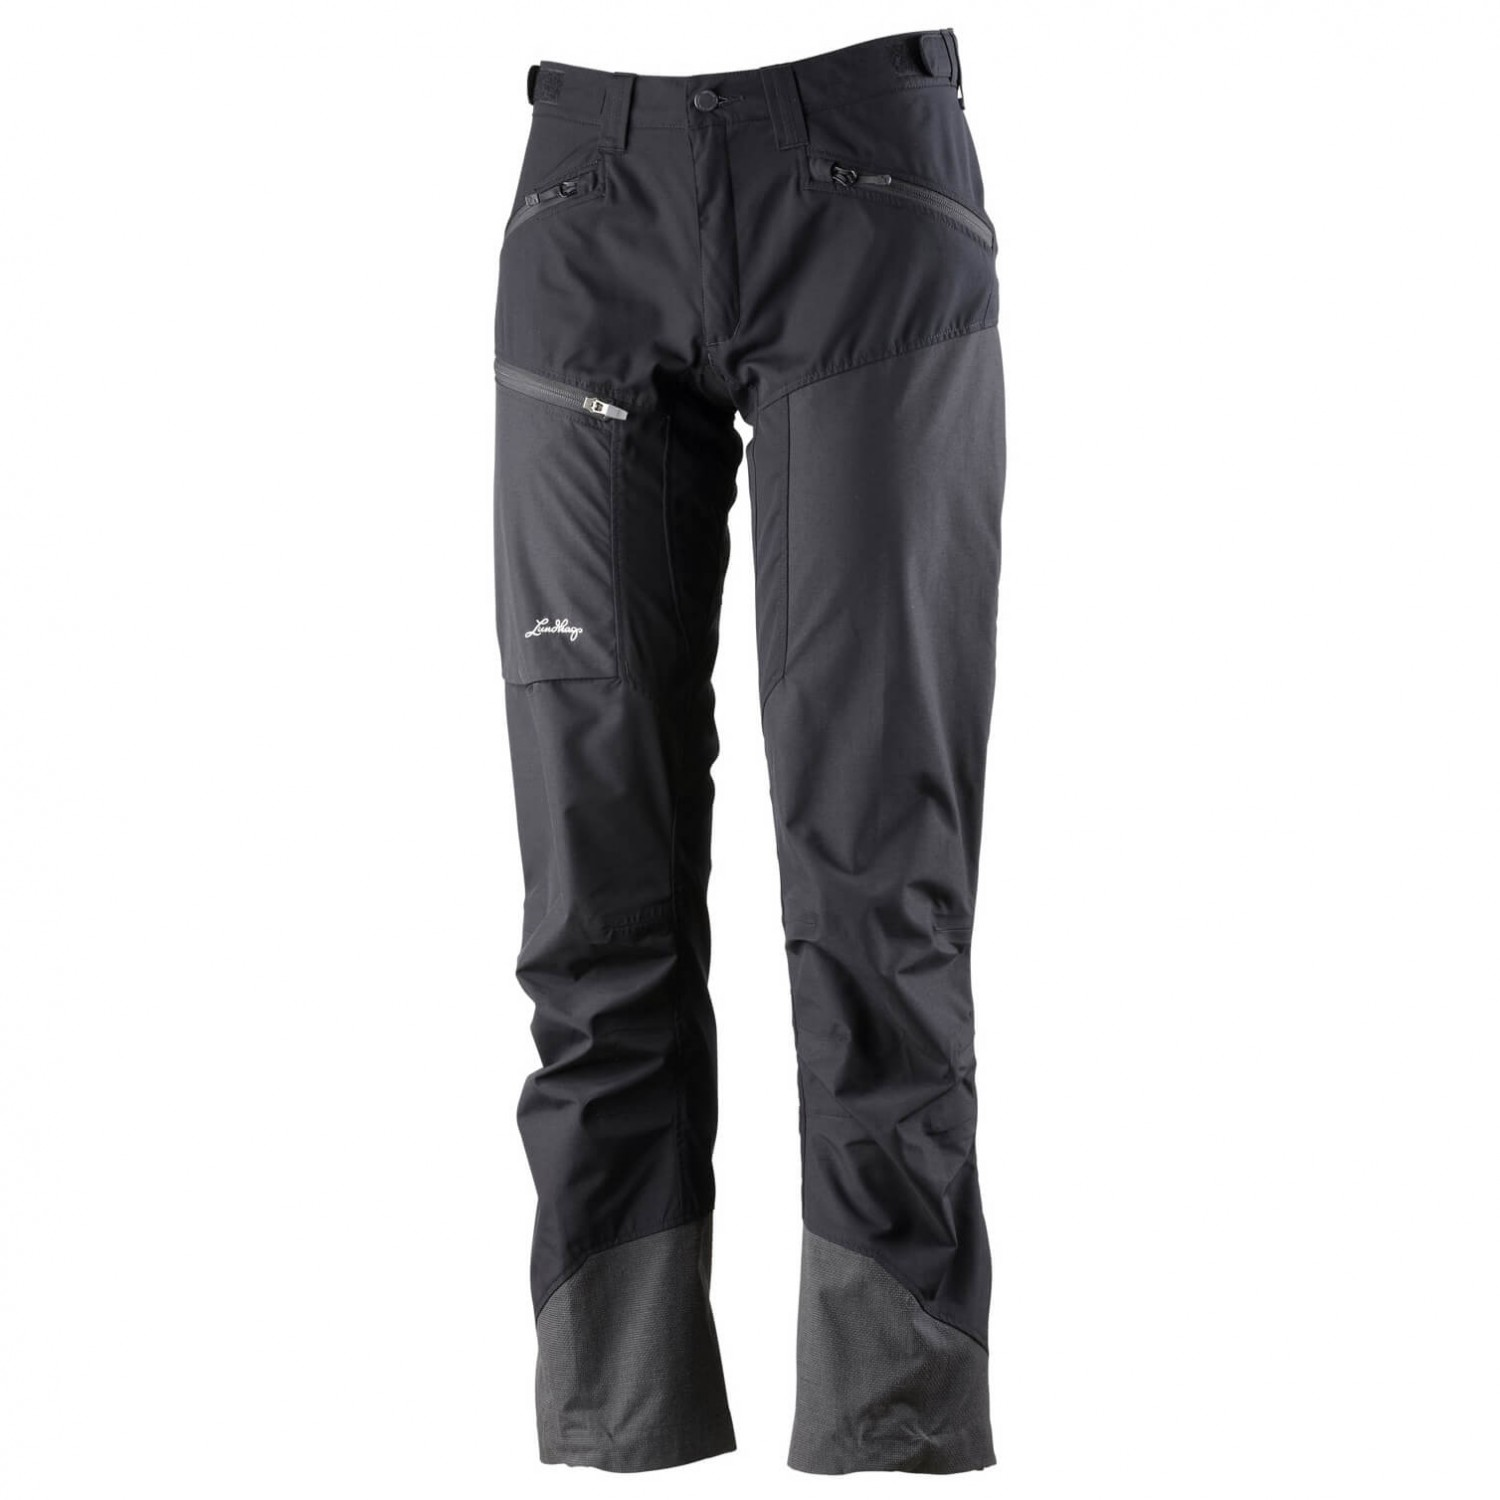 Excellent Women39s Quick Dry Salewa Outdoor Climbing Hiking Trekking Sport Pants